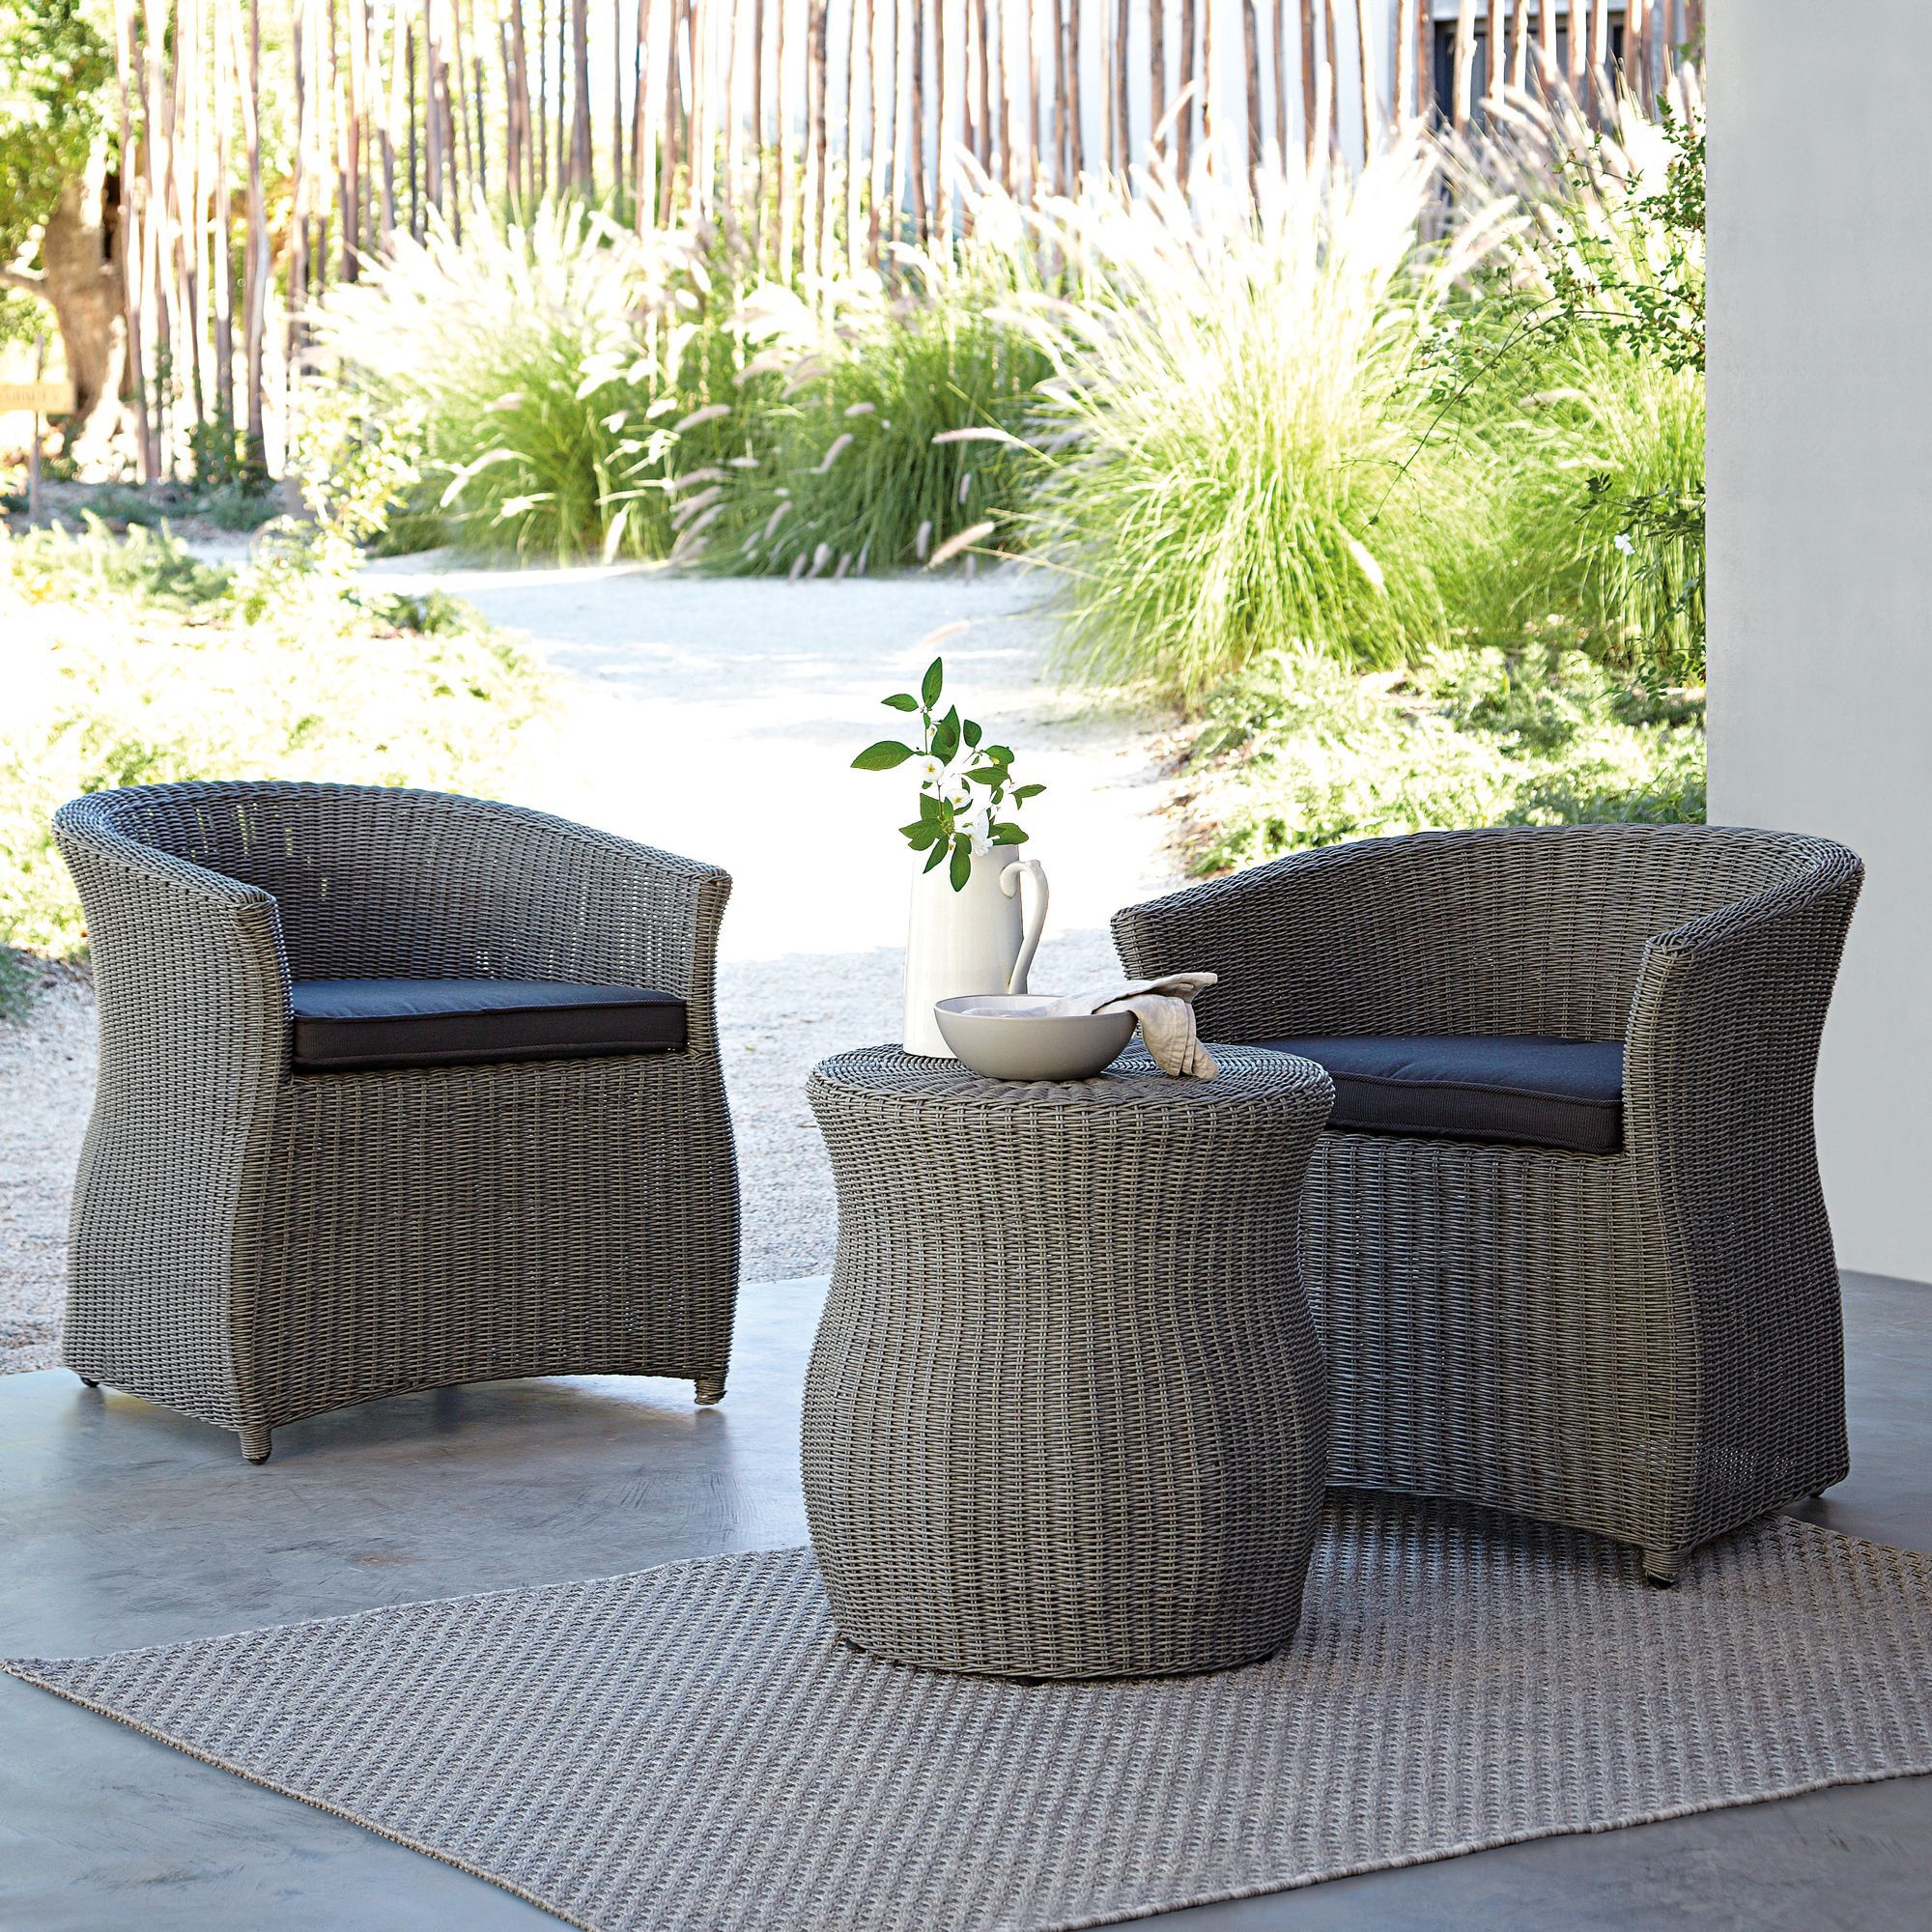 Garden Furniture Bbqs Outdoor Heating Diy At B Q - B And Q Garden Furniture Clearance Sale